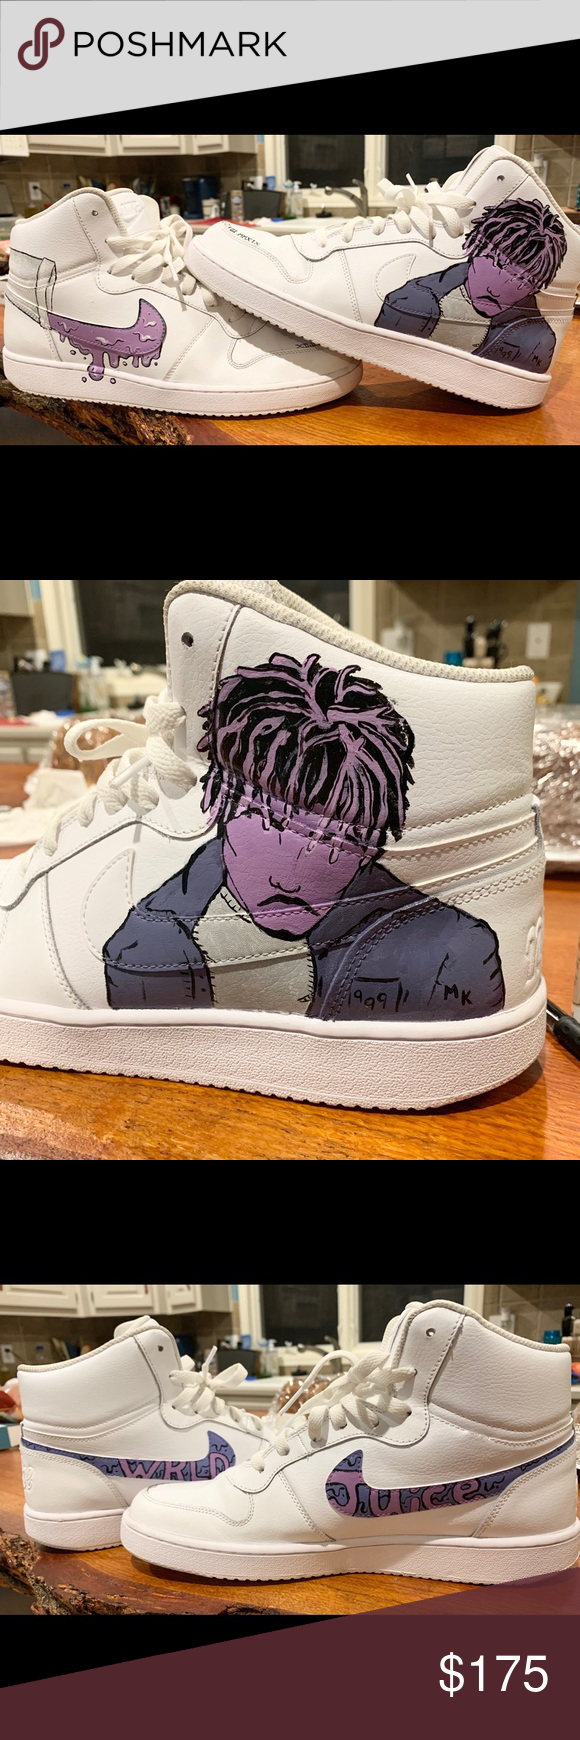 Juice WRLD Nike Ebernon AirForce 1s Custom nike shoes